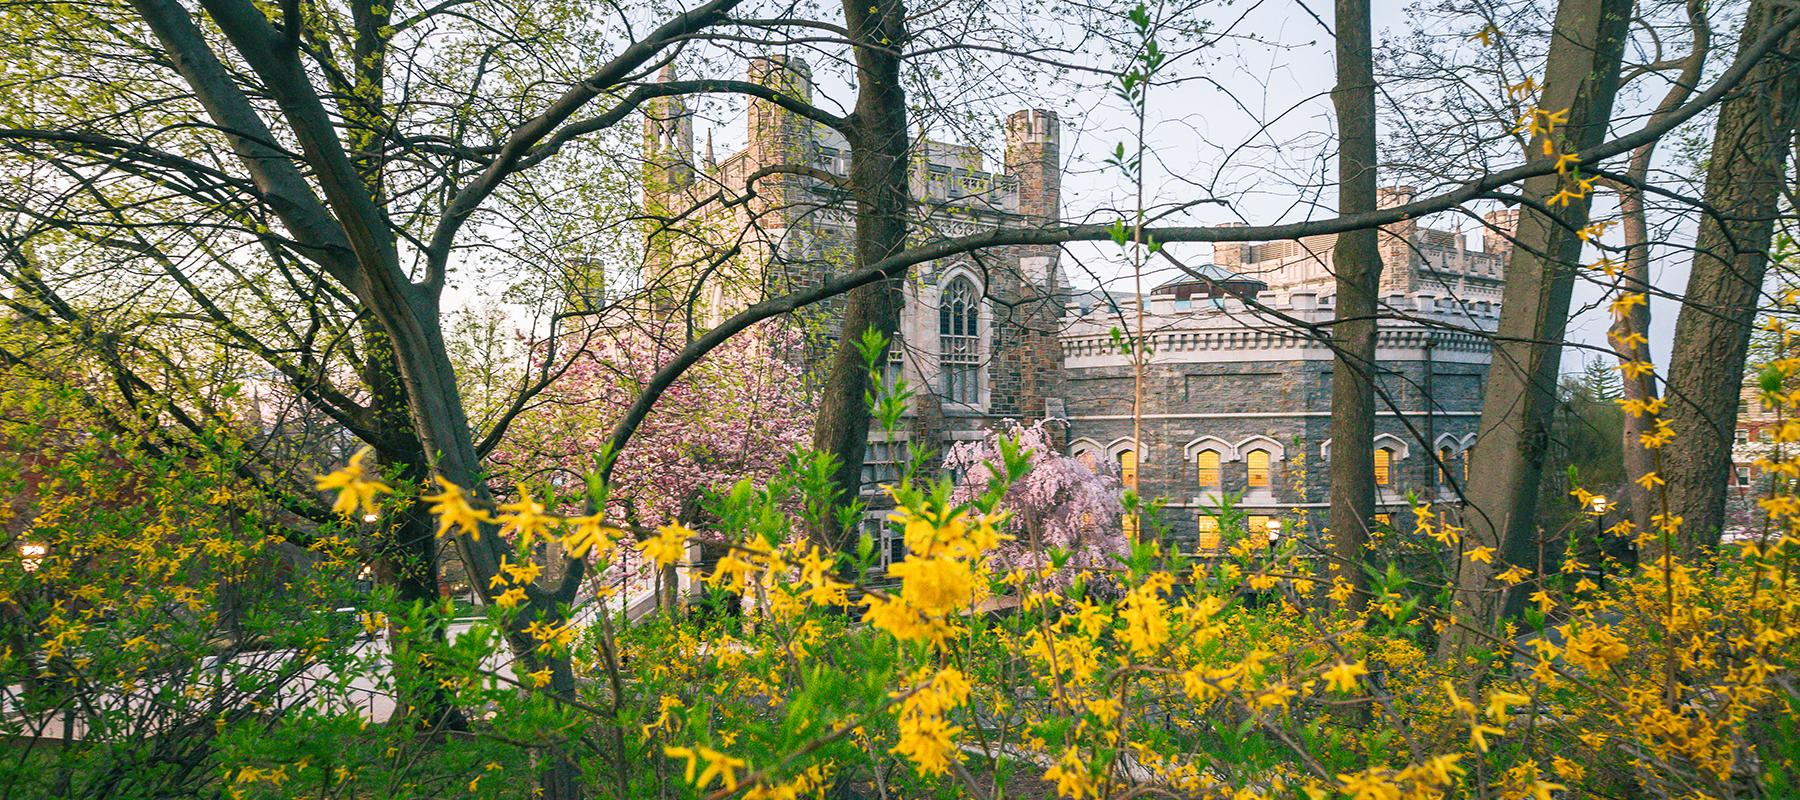 Lehigh University with spring blossoms